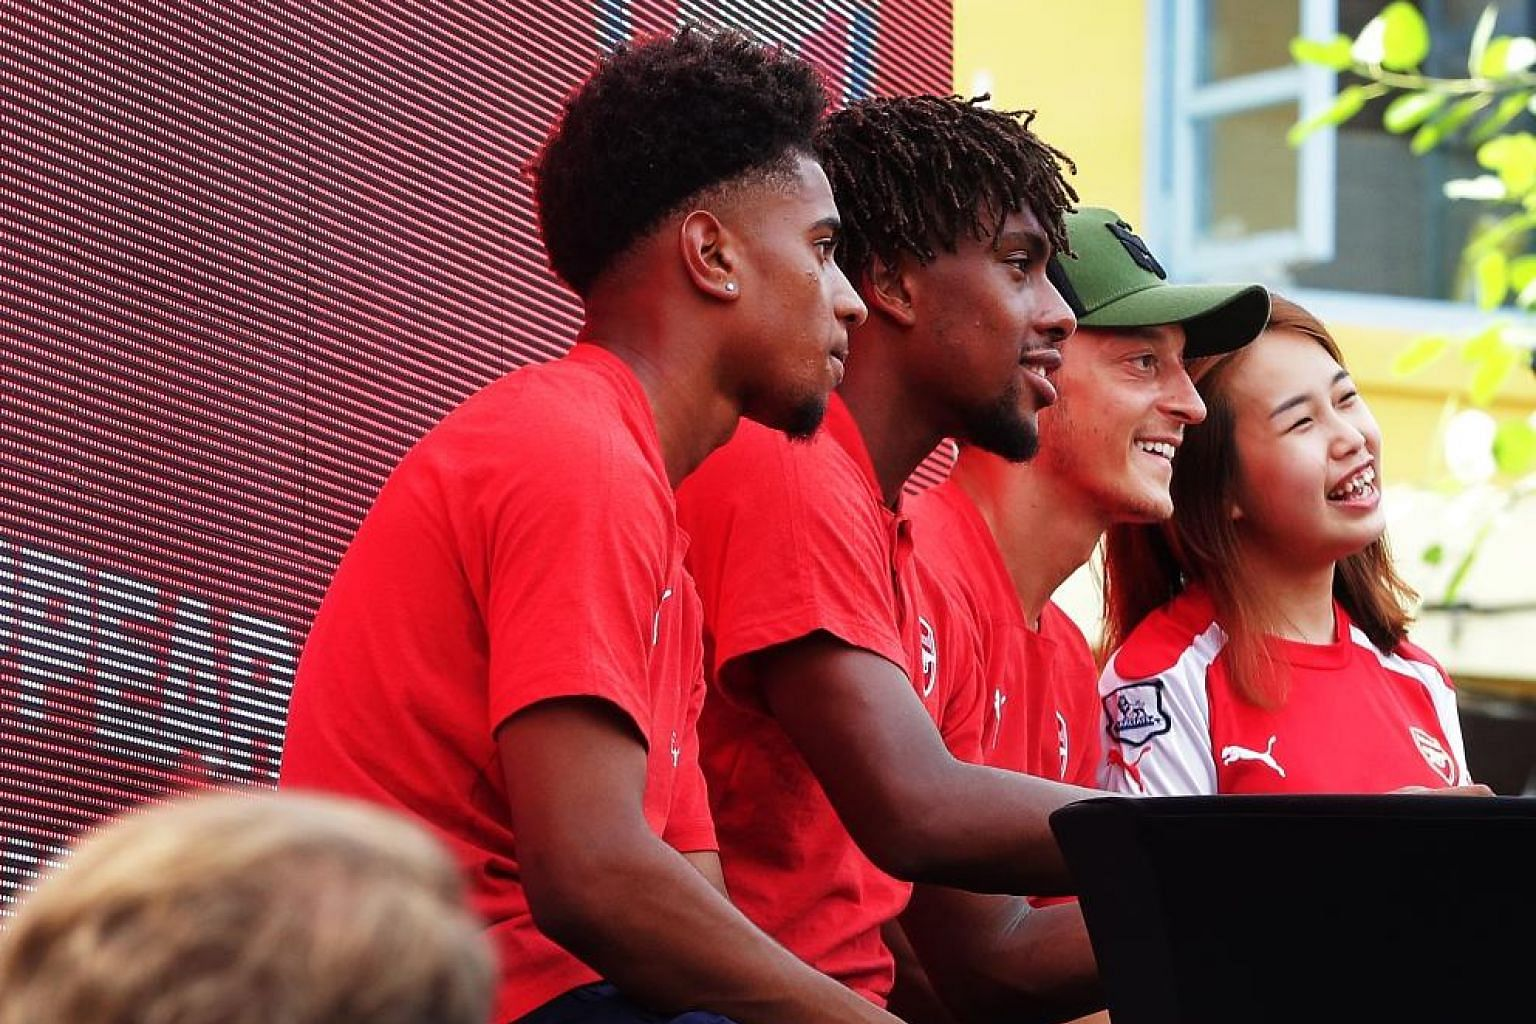 From left: Arsenal players Reiss Nelson, Alex Iwobi and Mesut Ozil with a fan at a meet-and-greet session at the House of Football in Clarke Quay yesterday.